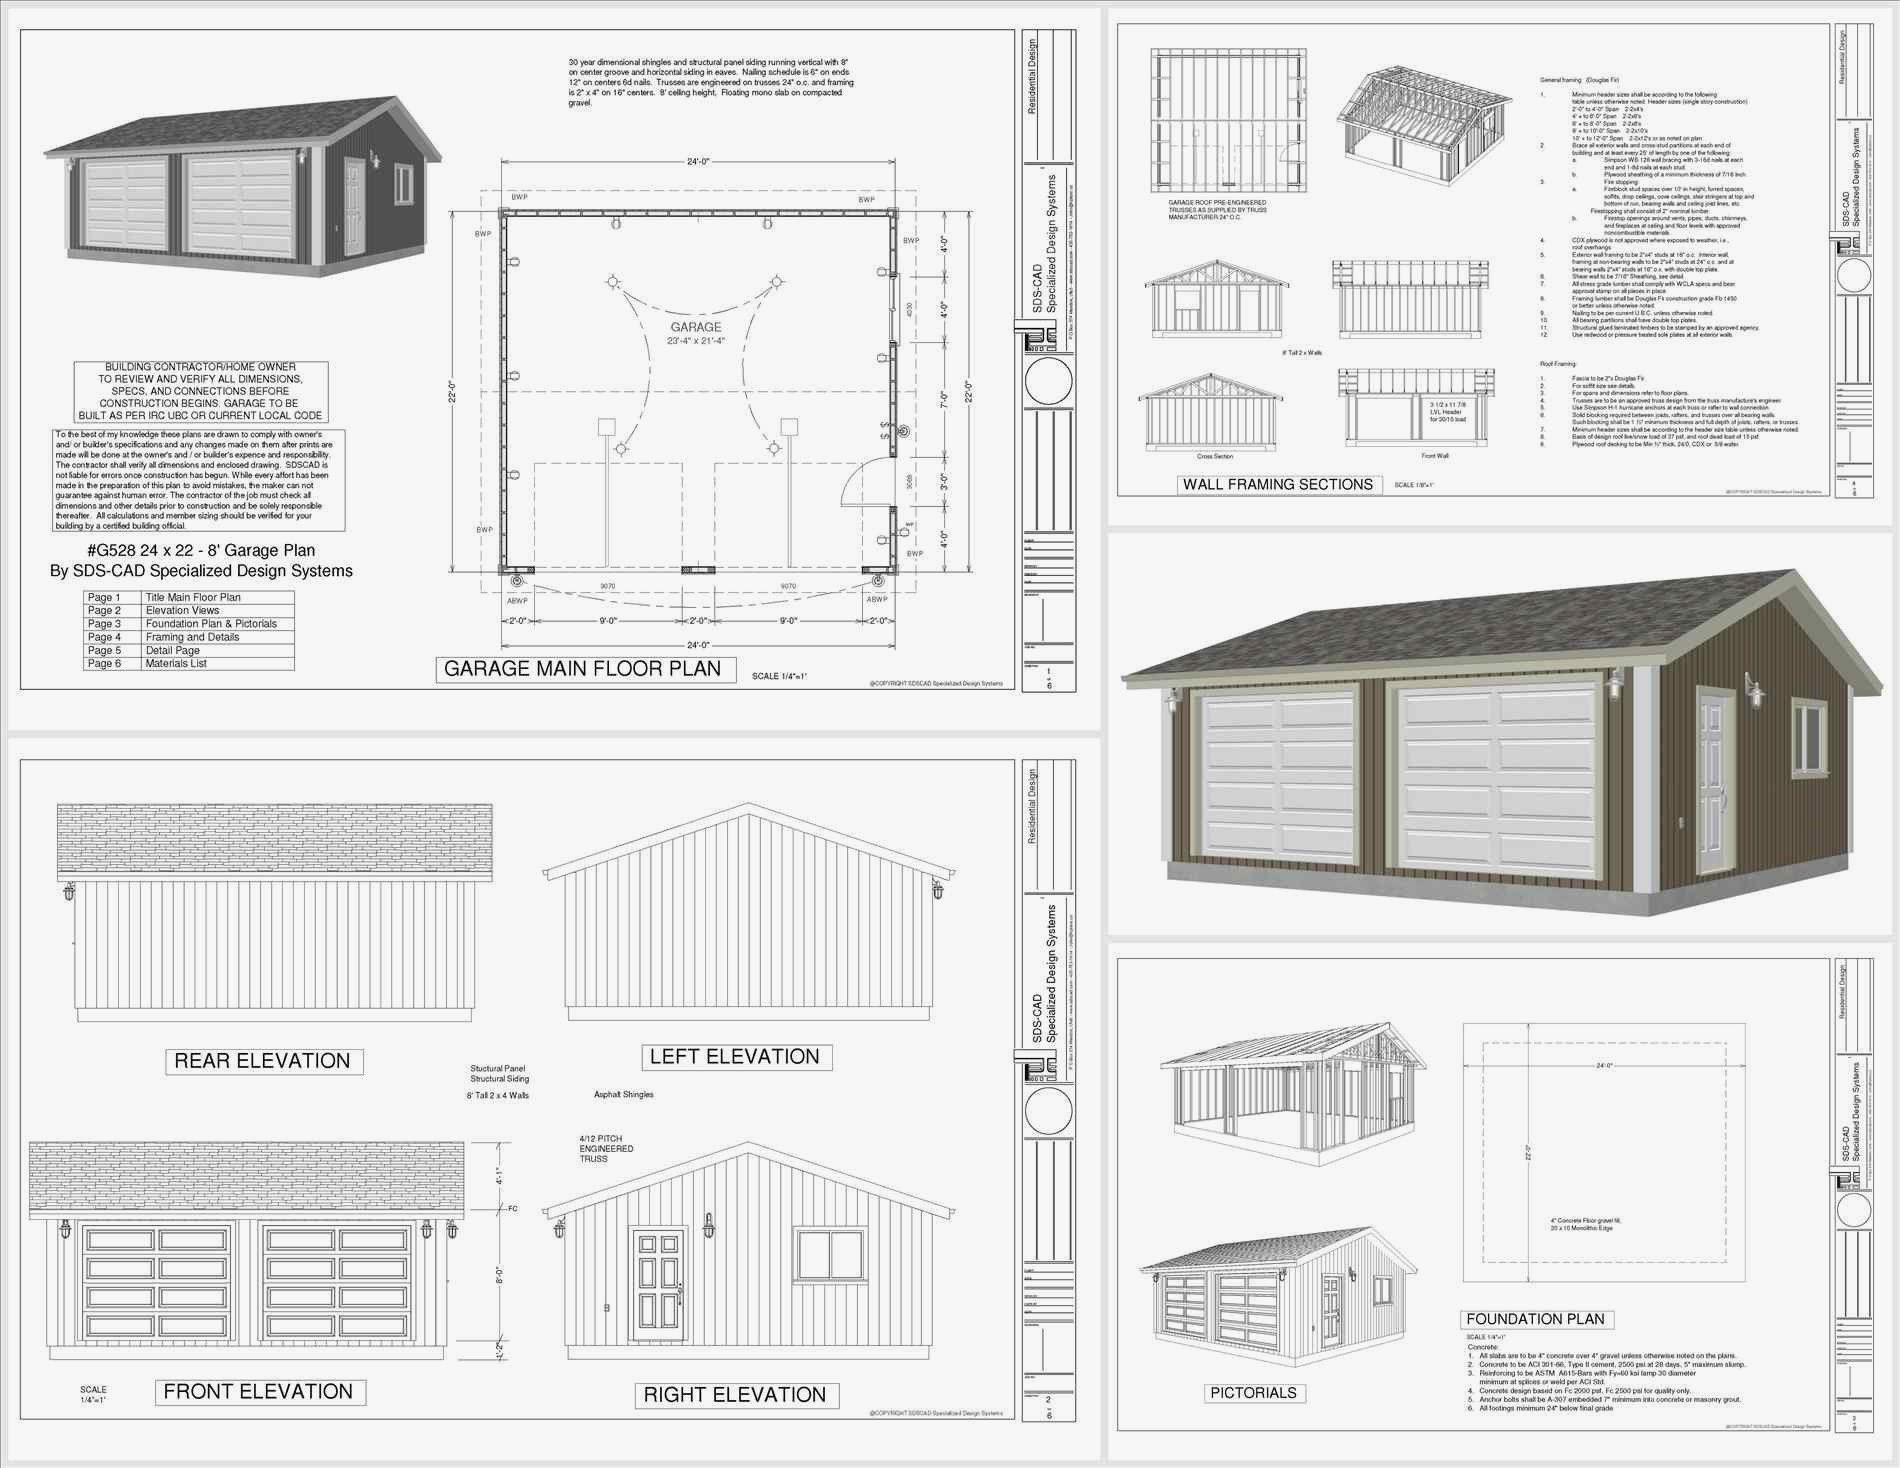 18 Inspirational Nail Designs Jamaica Sims House Blueprints Luxury Garage Floor Plans With Loft Carriage House Plans Ranch House Plans Garage Workshop Layout